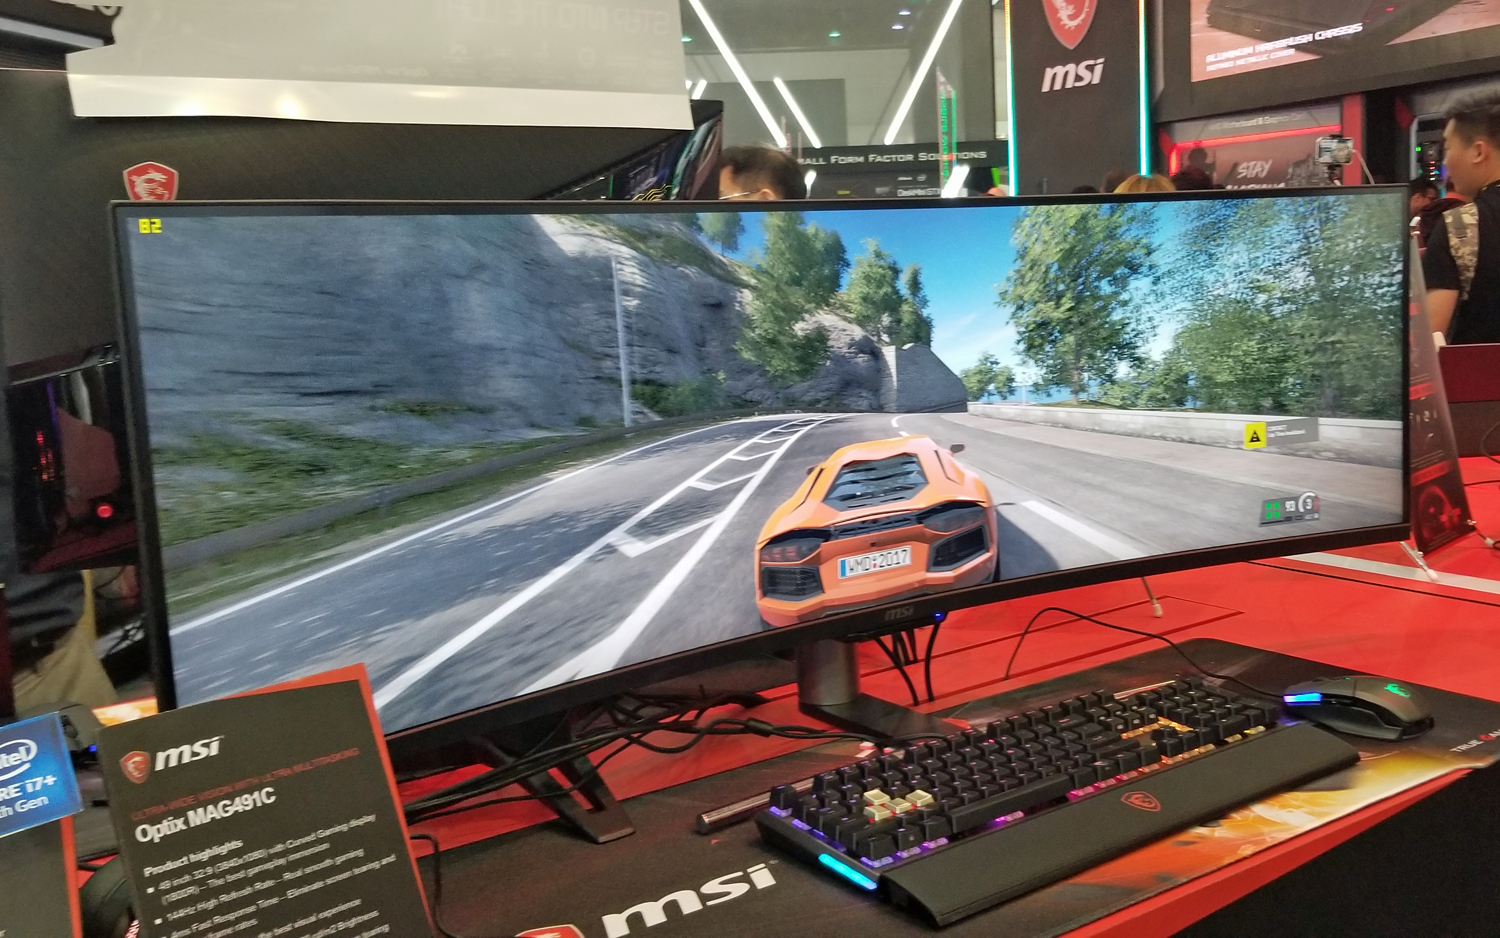 MSI's Eye-Popping, 49-inch Curved Display Can Be Two